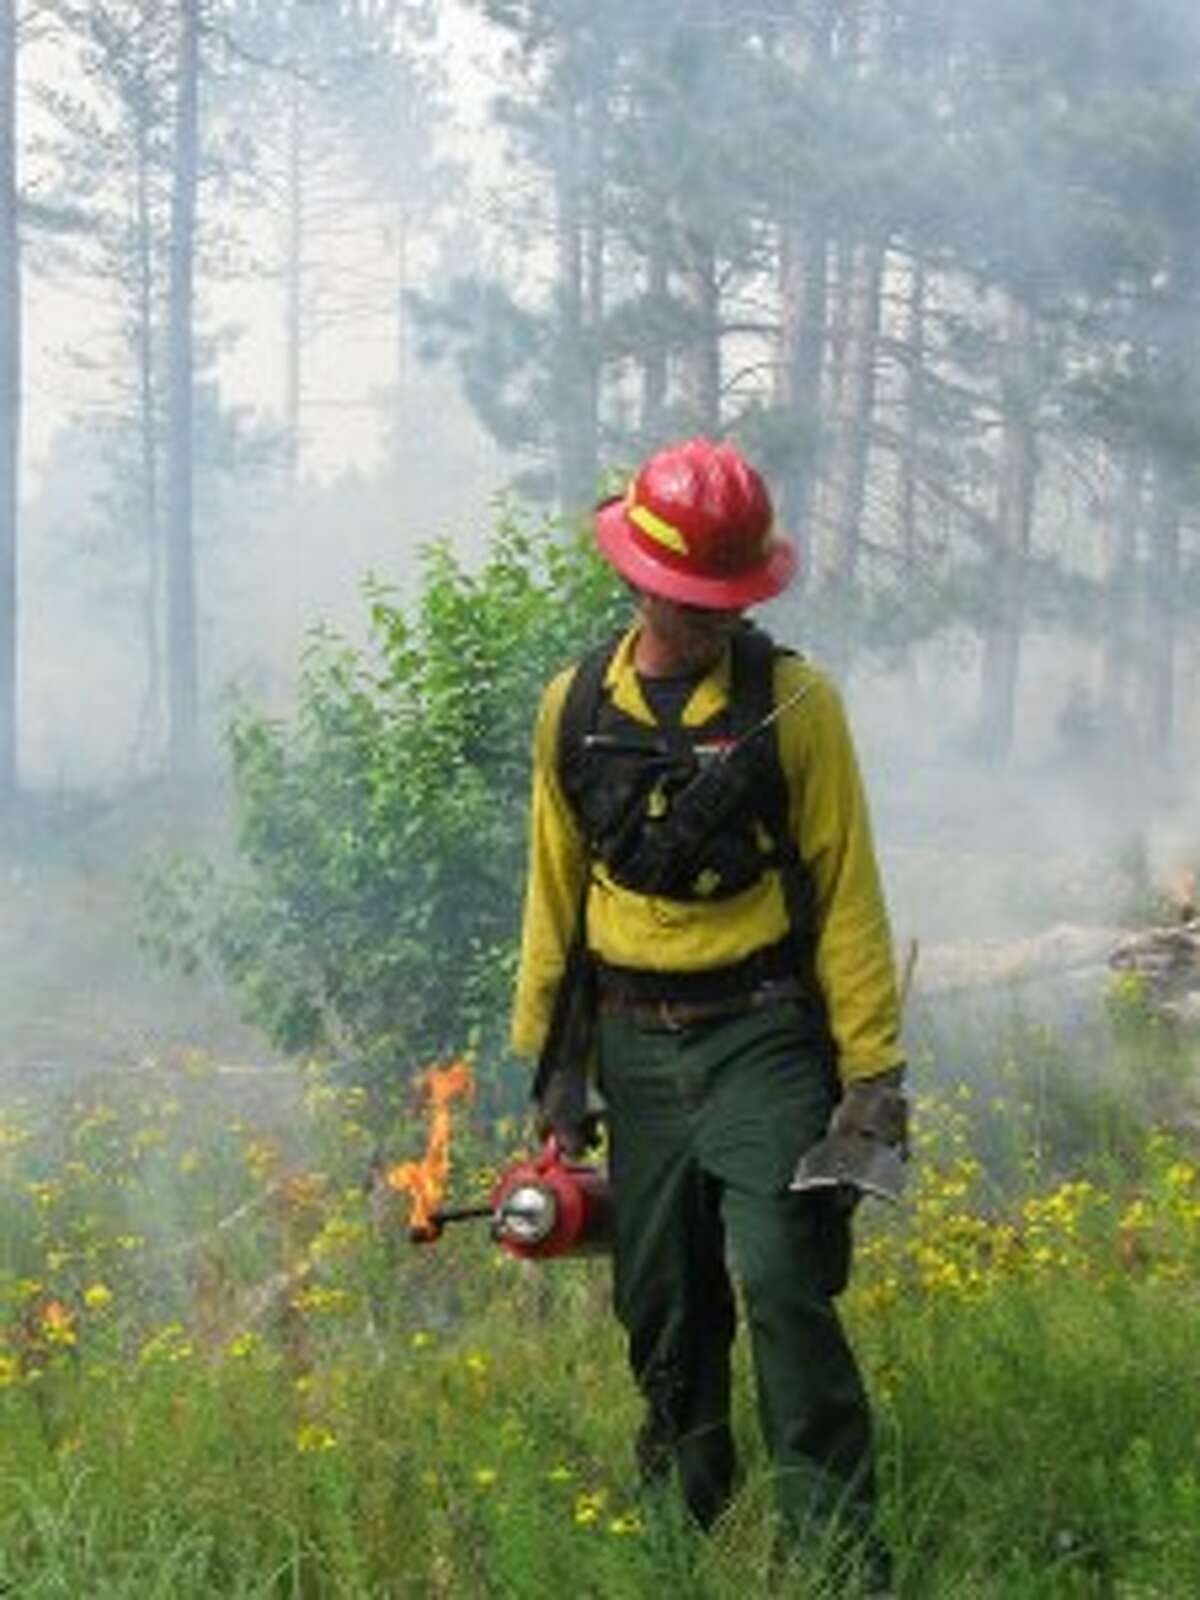 A ranger works to set prescribed fires, which are used to clear areas of trees and other debris, and bring back the savanna habitat.